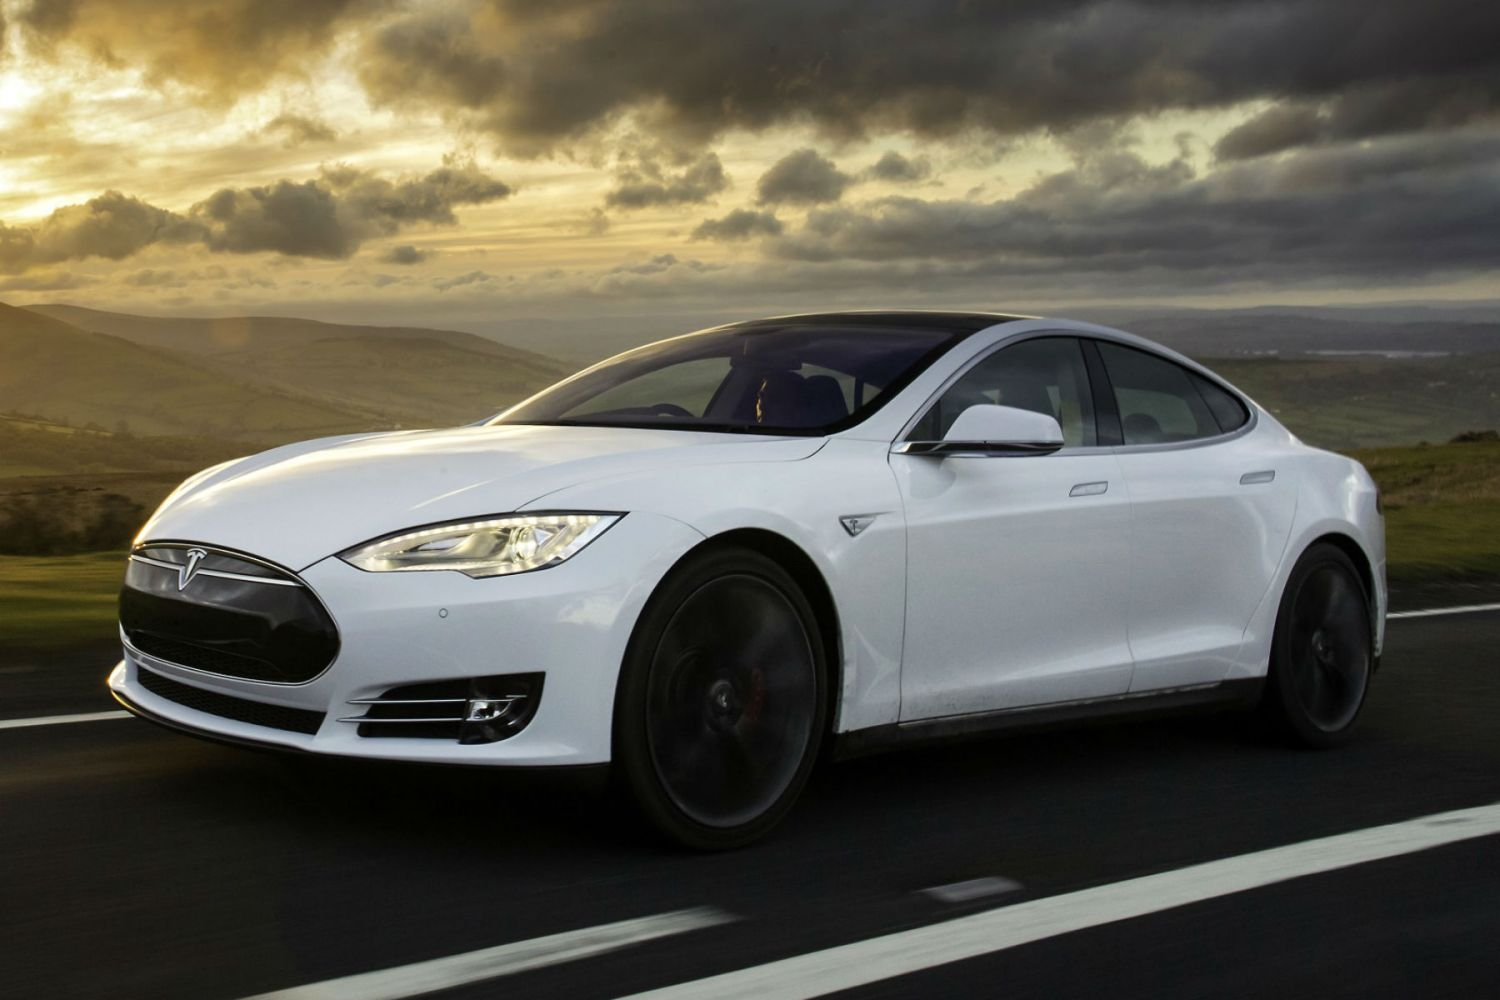 A man has died after his Tesla crashed while on autopilot